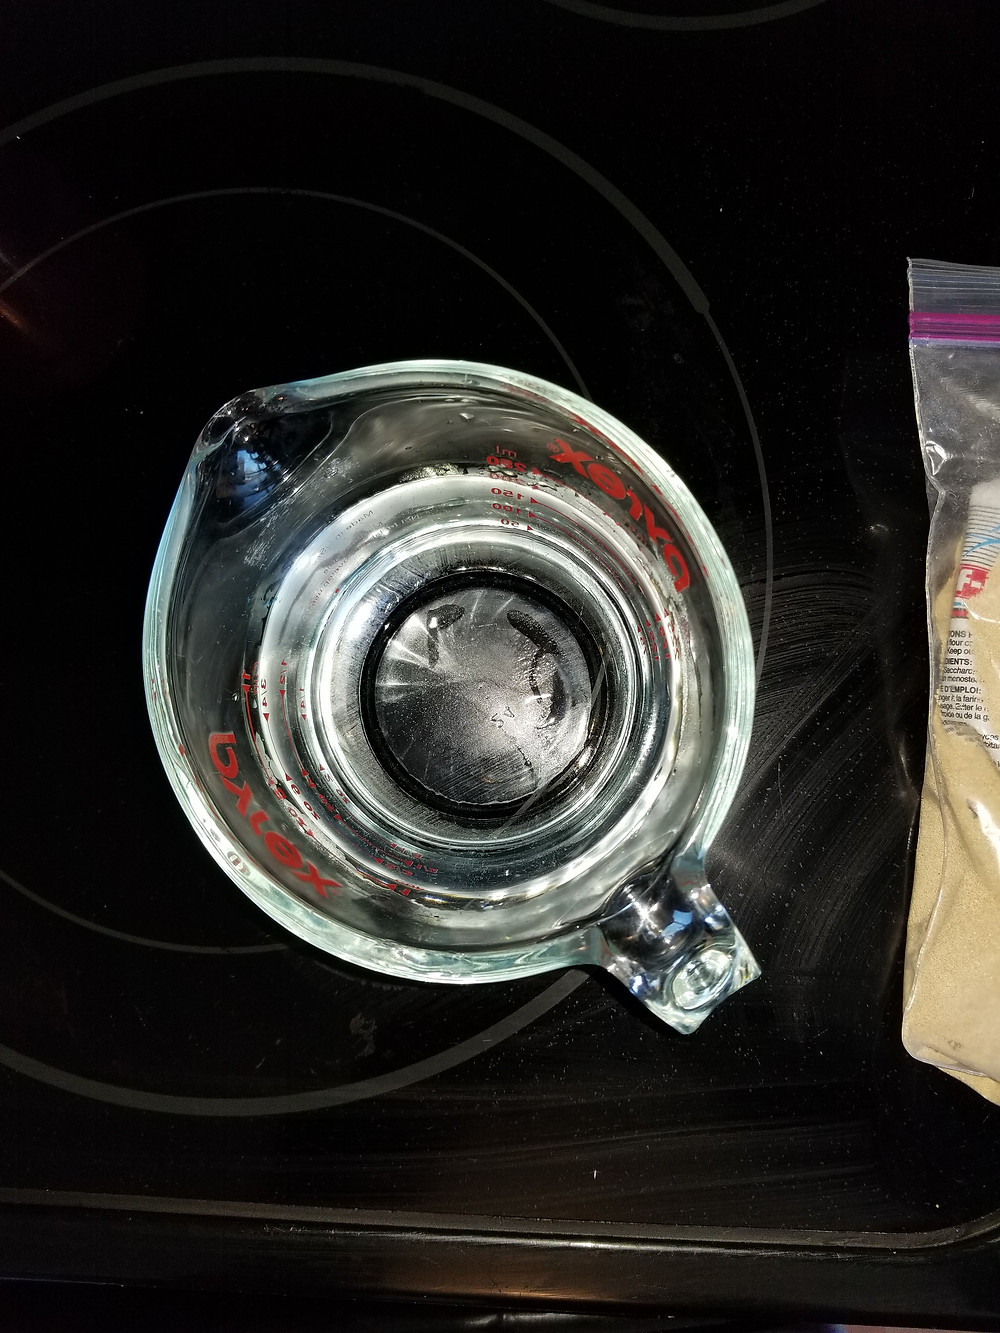 glass Pyrex measuring cup filled to 1 cup mark with hot water sitting on a black stove top next to a bag of yeast.